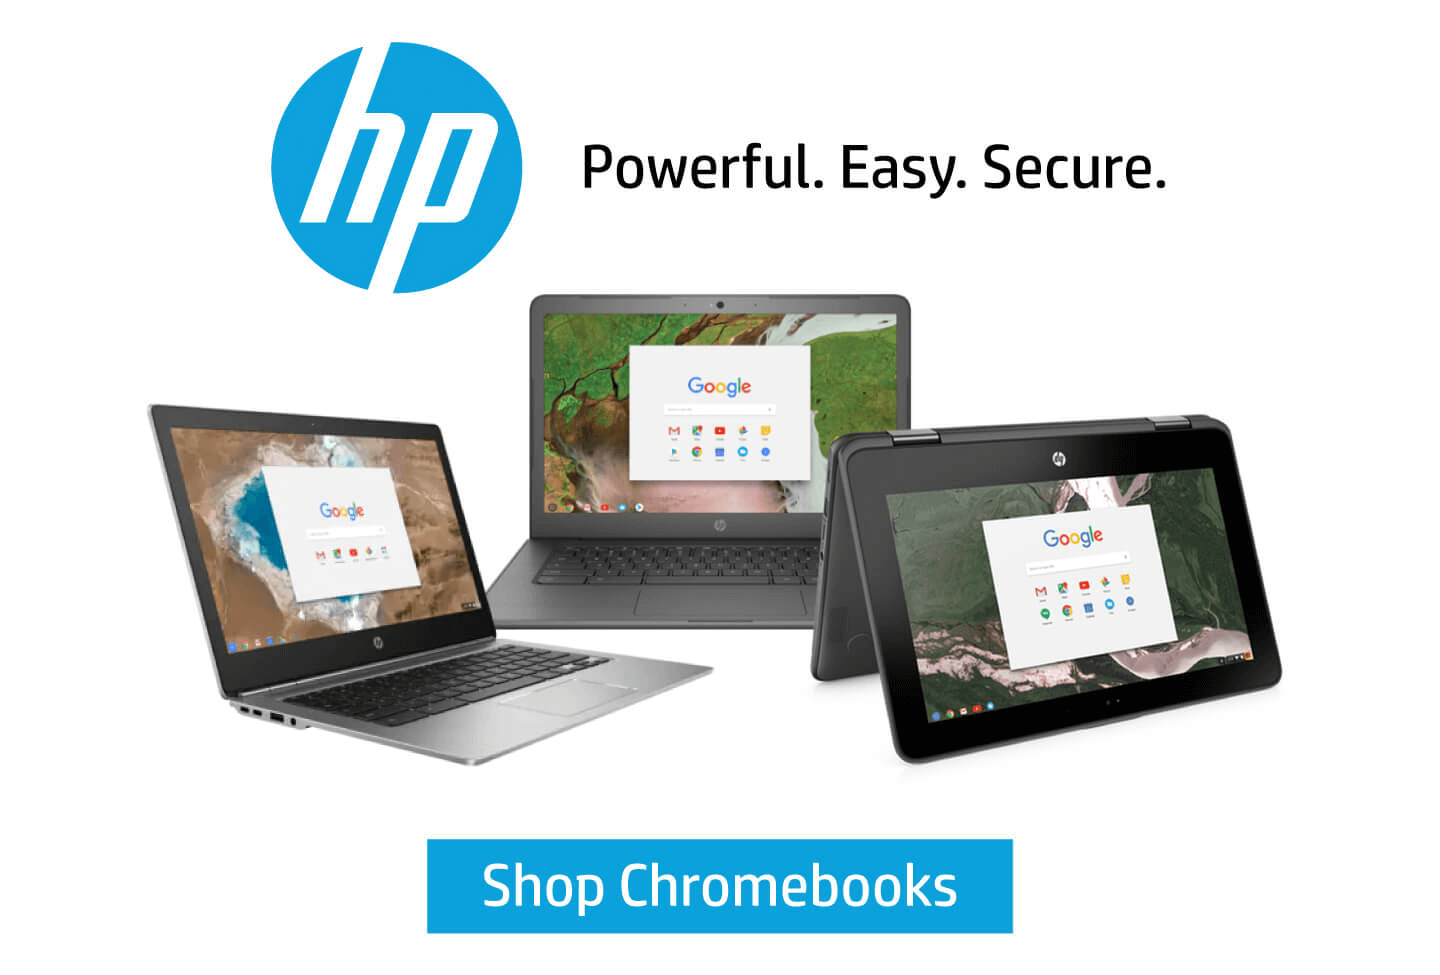 HP Chromebooks - Power. Easy. Secure.